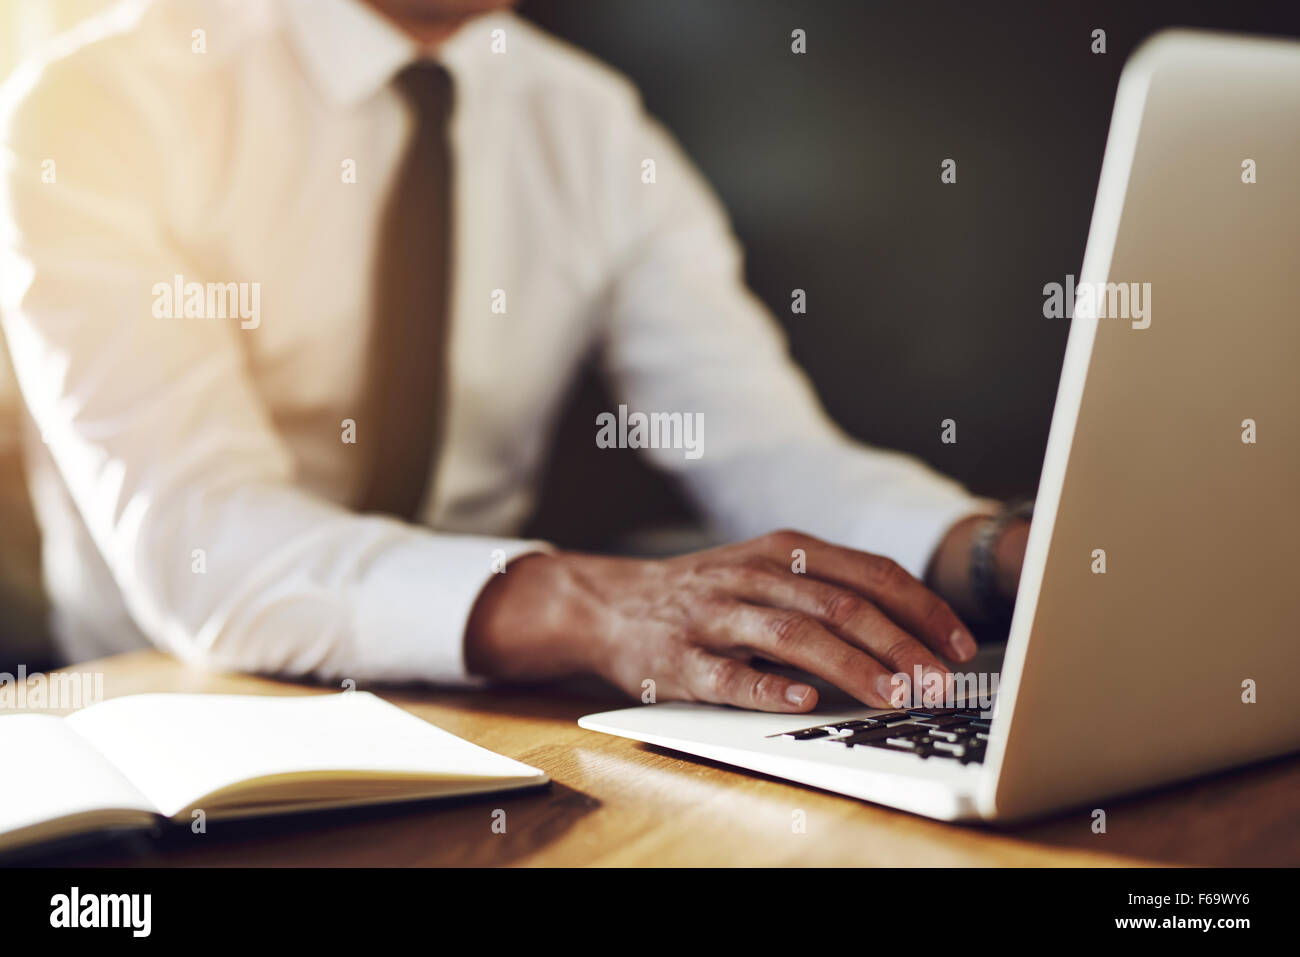 Close up of hands writing at laptop, business concept, white shirt and tie - Stock Image